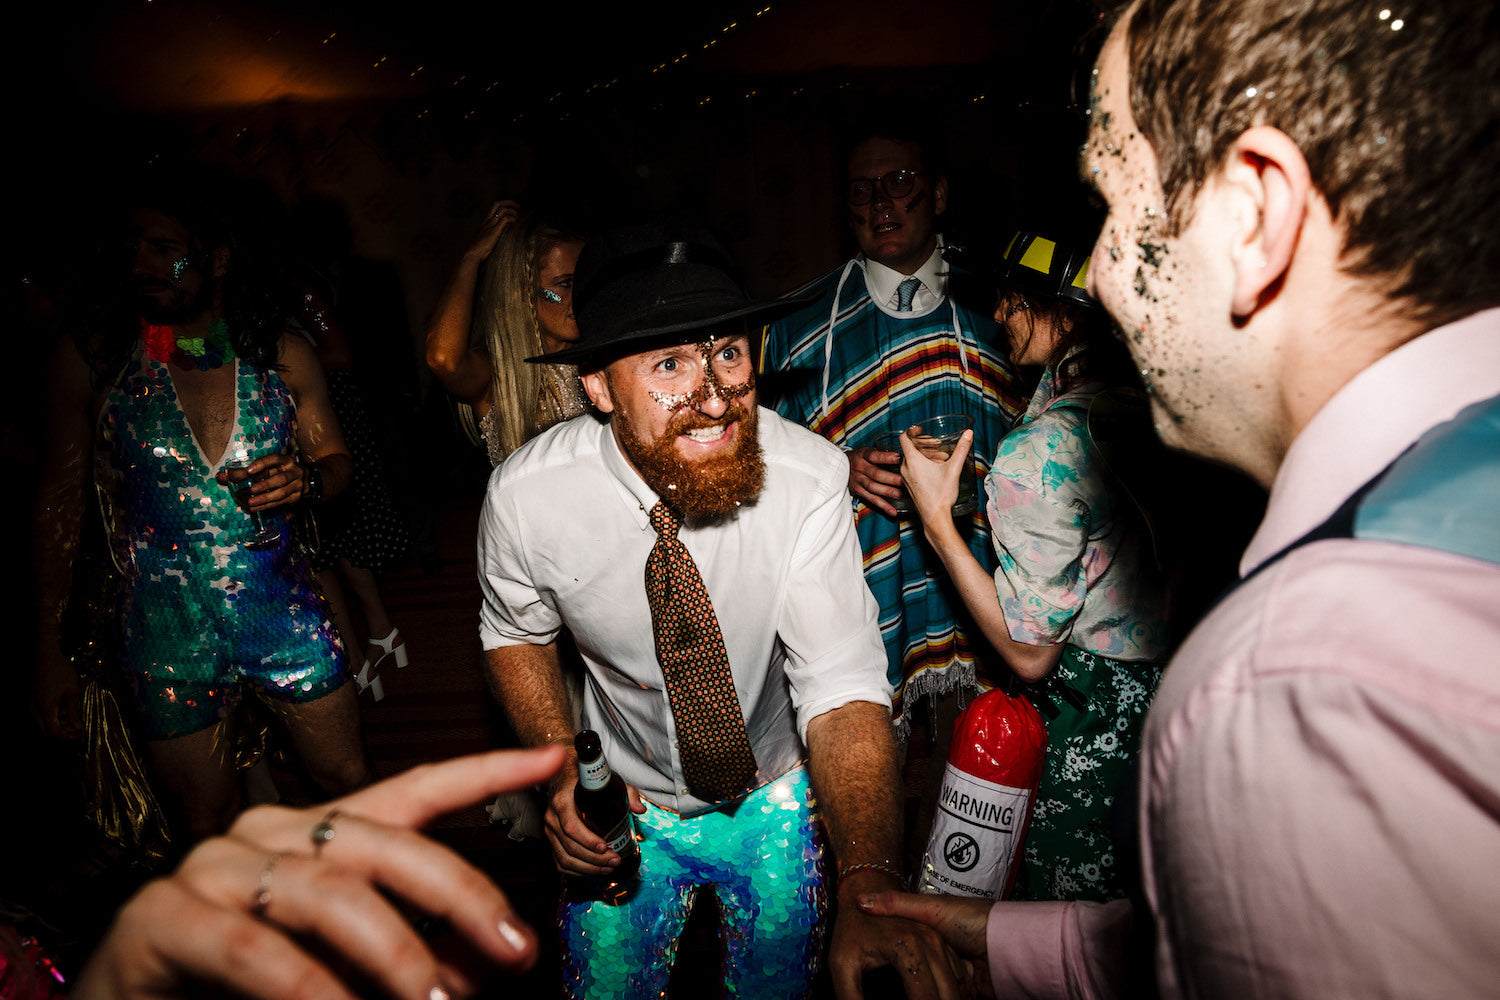 A groom wearing white sequin leggings a white shirt and a black hat is dancing with friends at his wedding reception